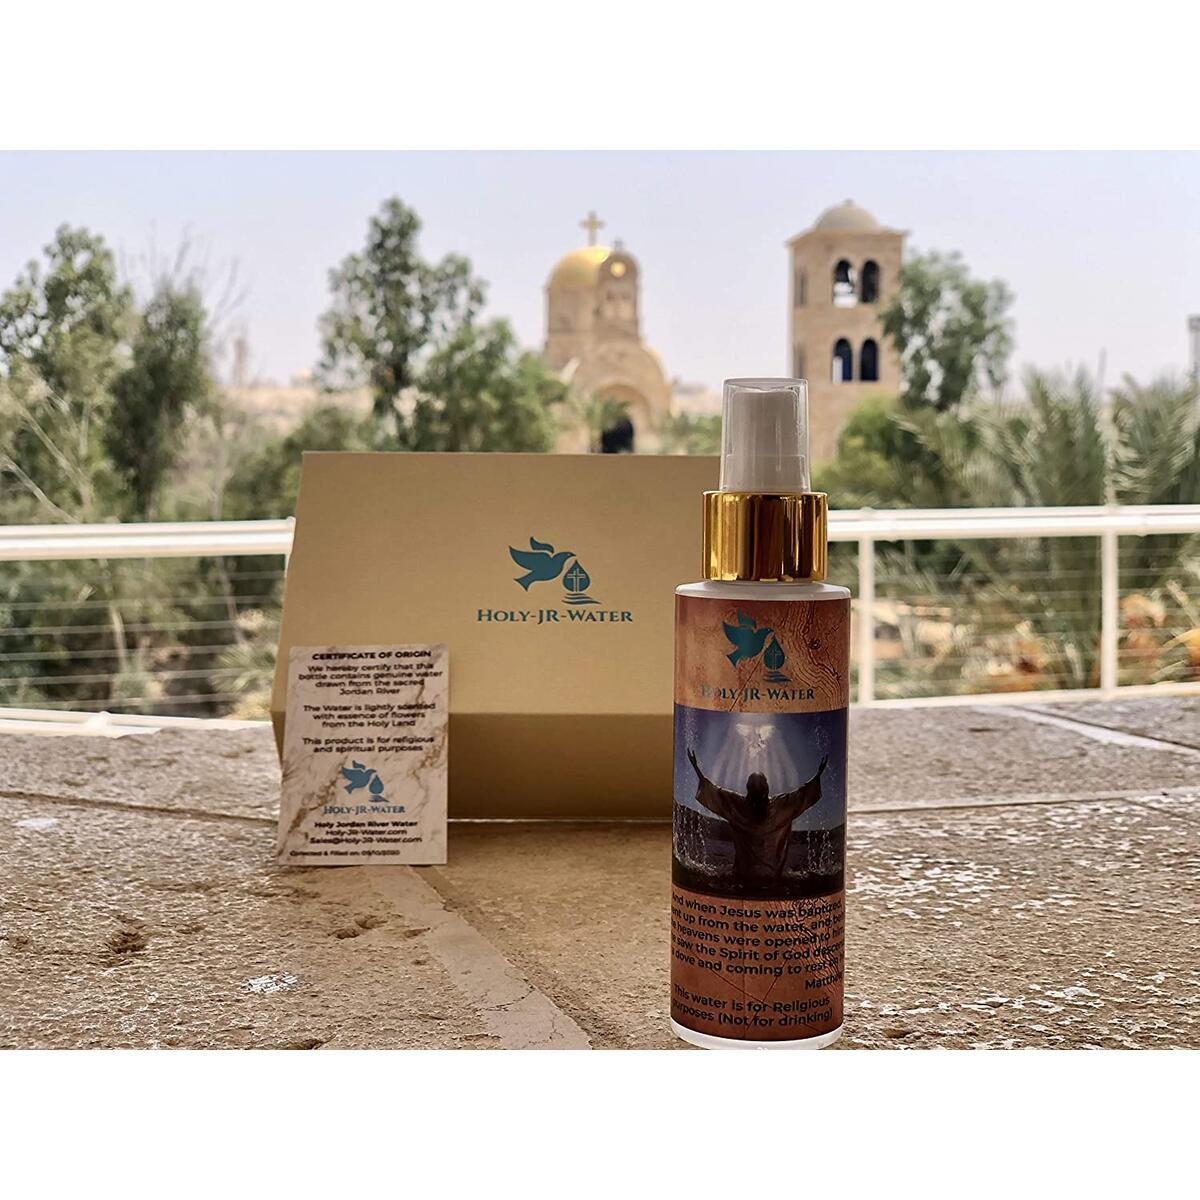 Antique Blessed Holy Water From Jordan River Bottle Packed in Unique Fancy Box For Home with Certificate Card